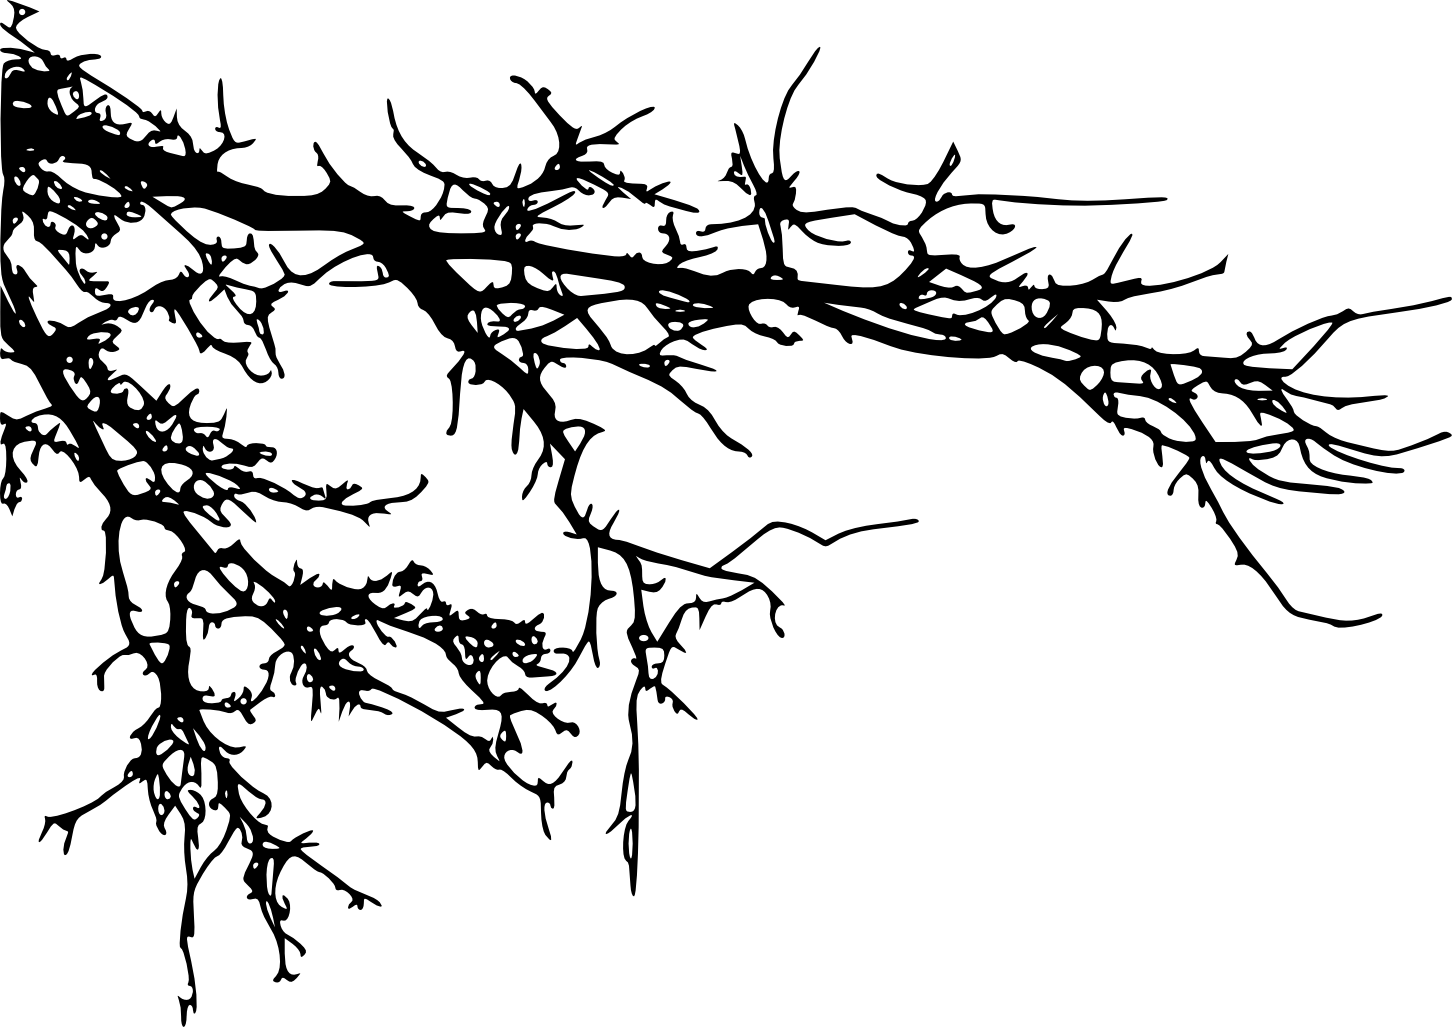 tree branch silhouette 15 tree branch silhouettes png transparent onlygfxcom branch tree silhouette